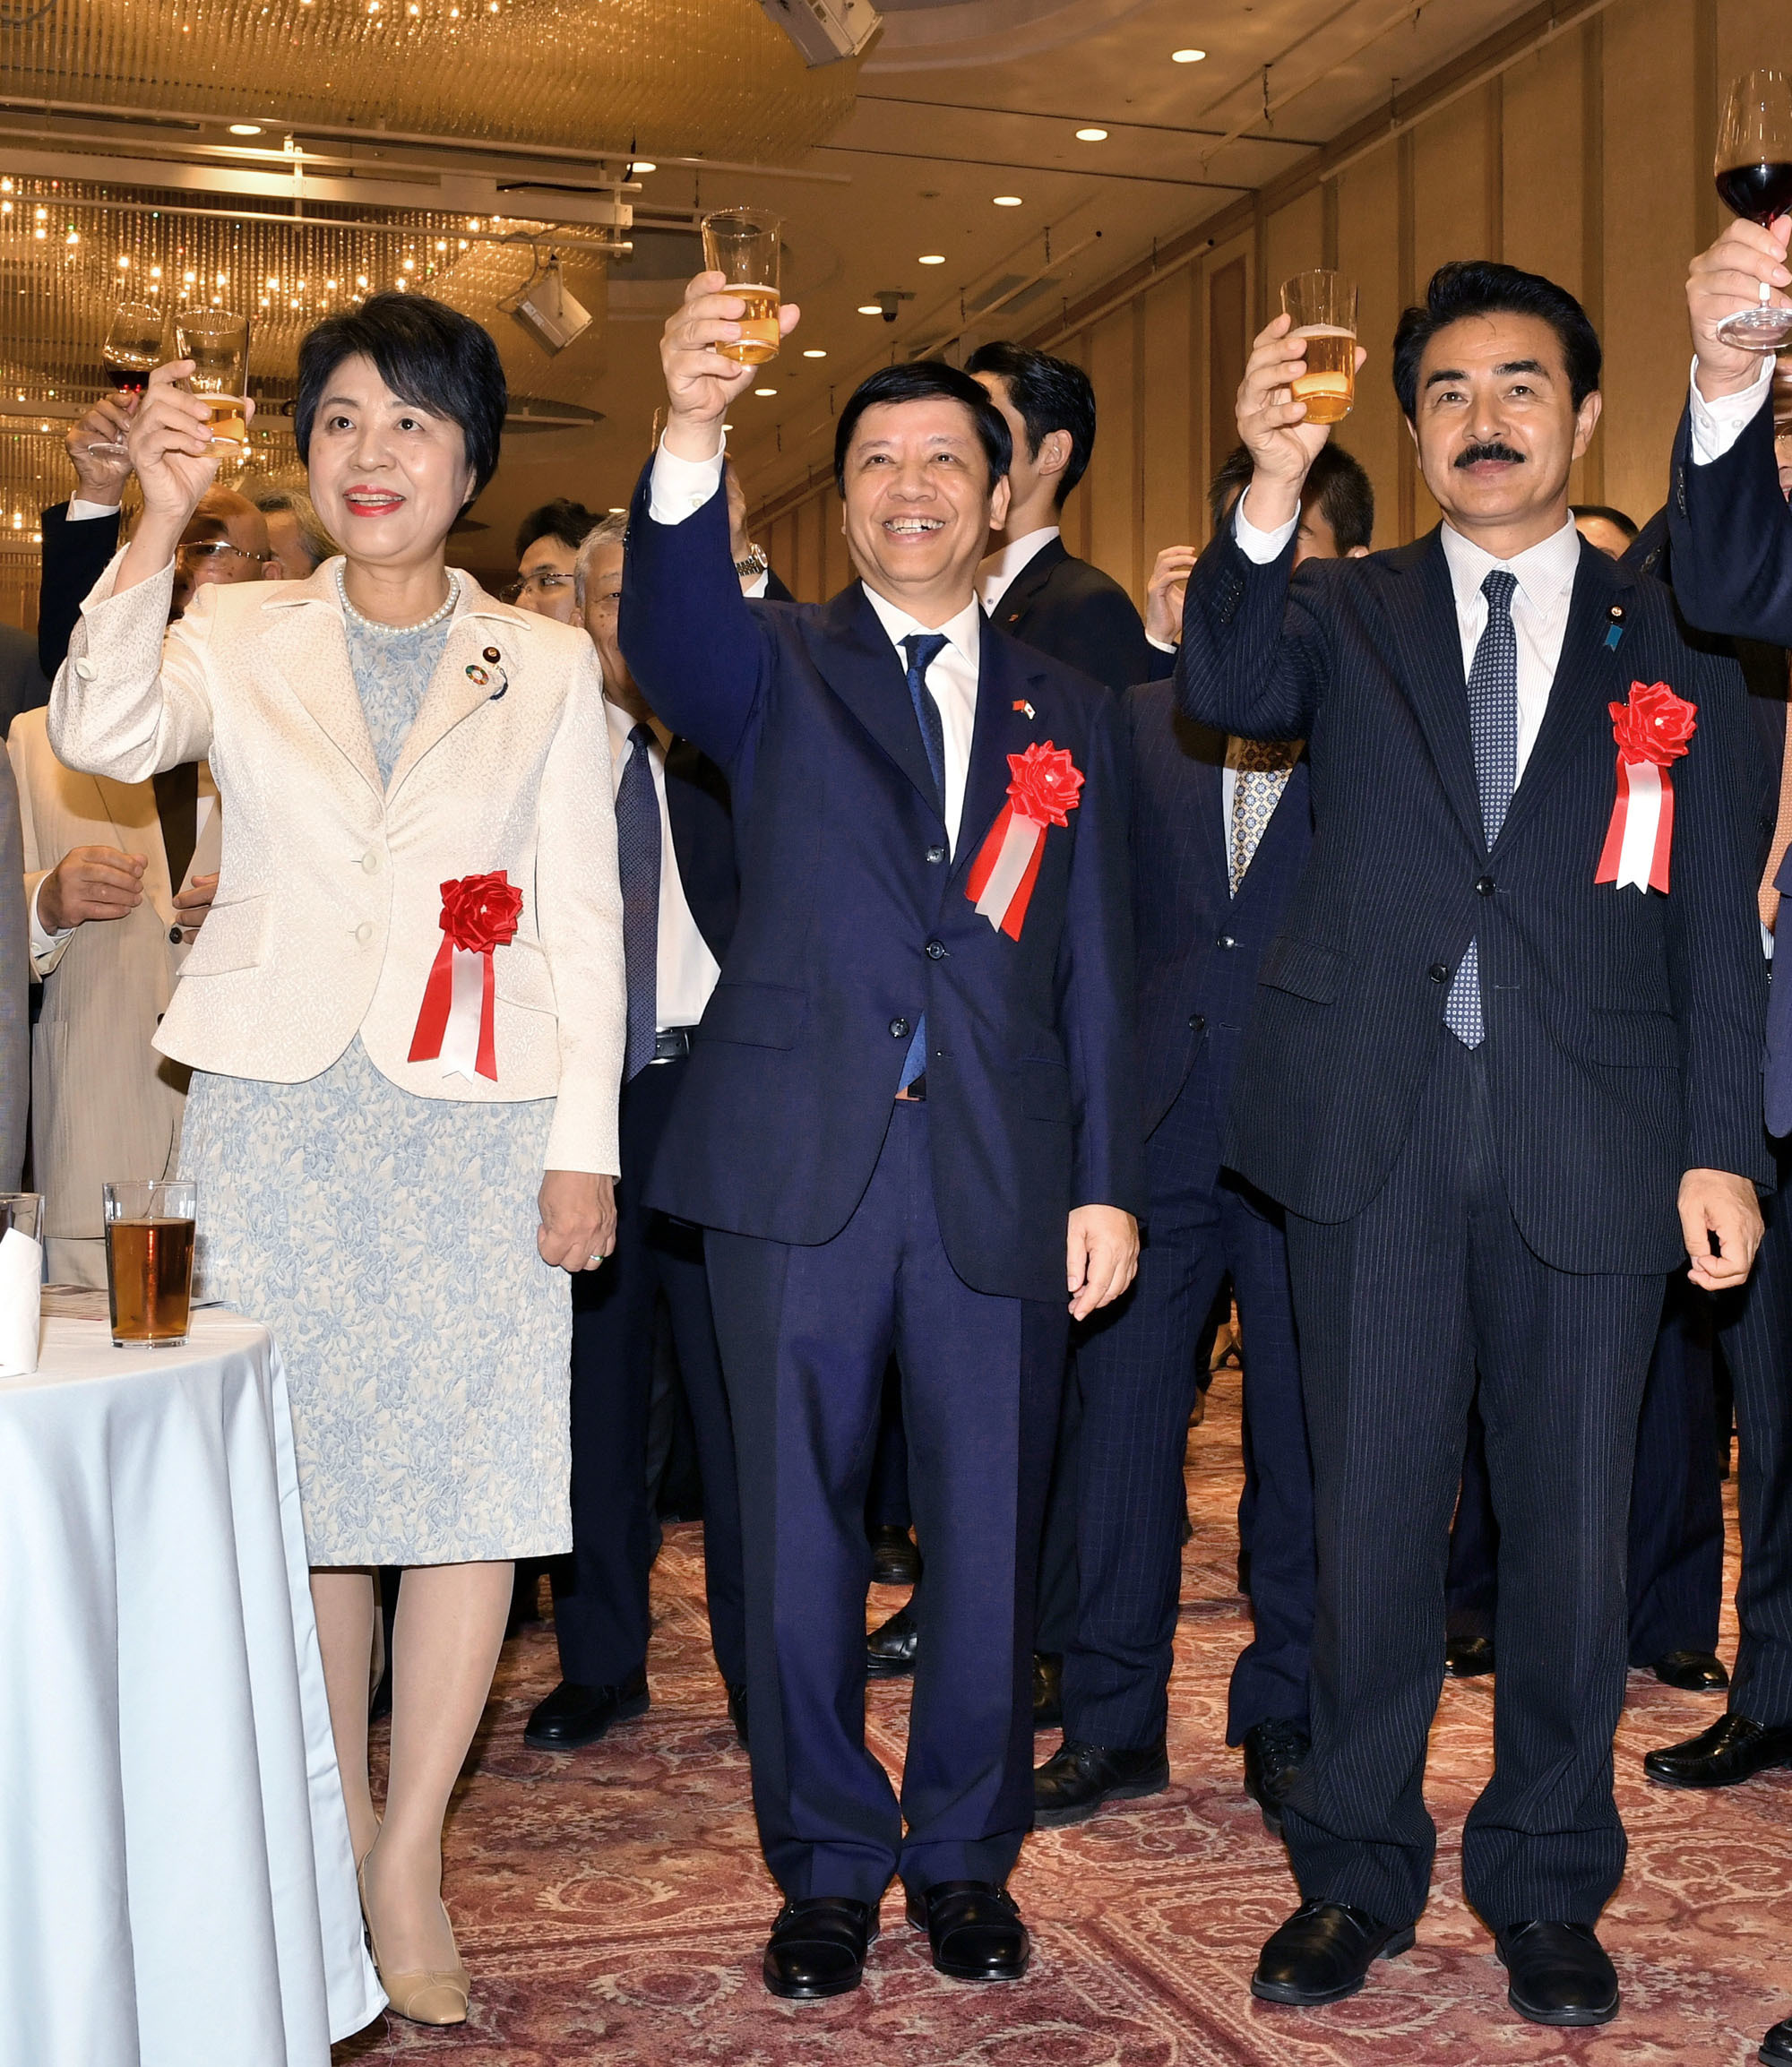 Vietnamese Ambassador Nguyen Quoc Cuong (center) poses for a photo with Justice Minister Yoko Kamikawa (left) and State Minister for Foreign Affairs Masahisa Sato (right) at a reception to celebrate Vietnmese national day at Meiji Kinenkan in Tokyo on Aug. 31. |  YOSHIAKI MIURA